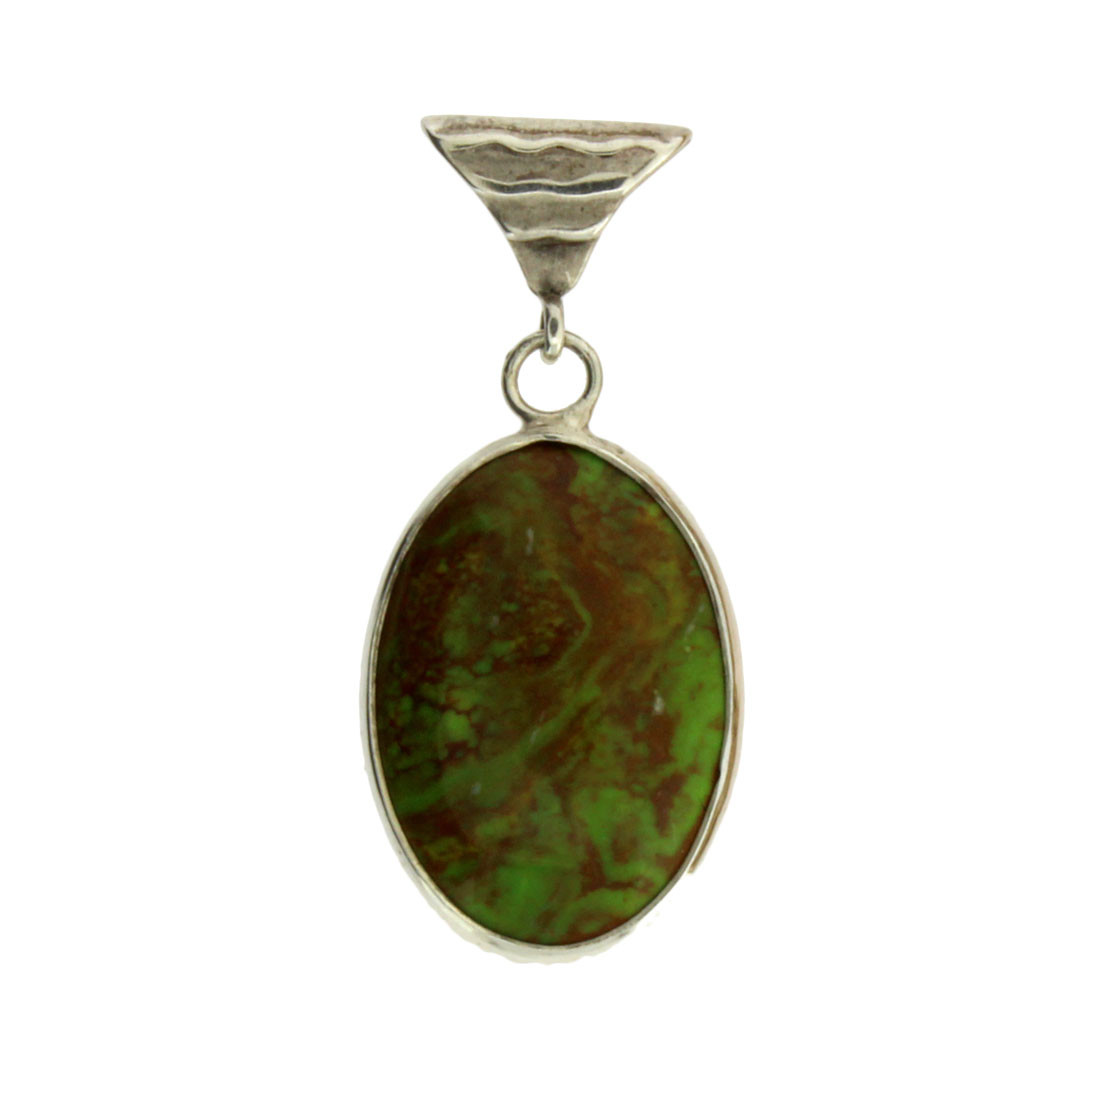 Oval Green Turquoise Sterling Silver Pendant